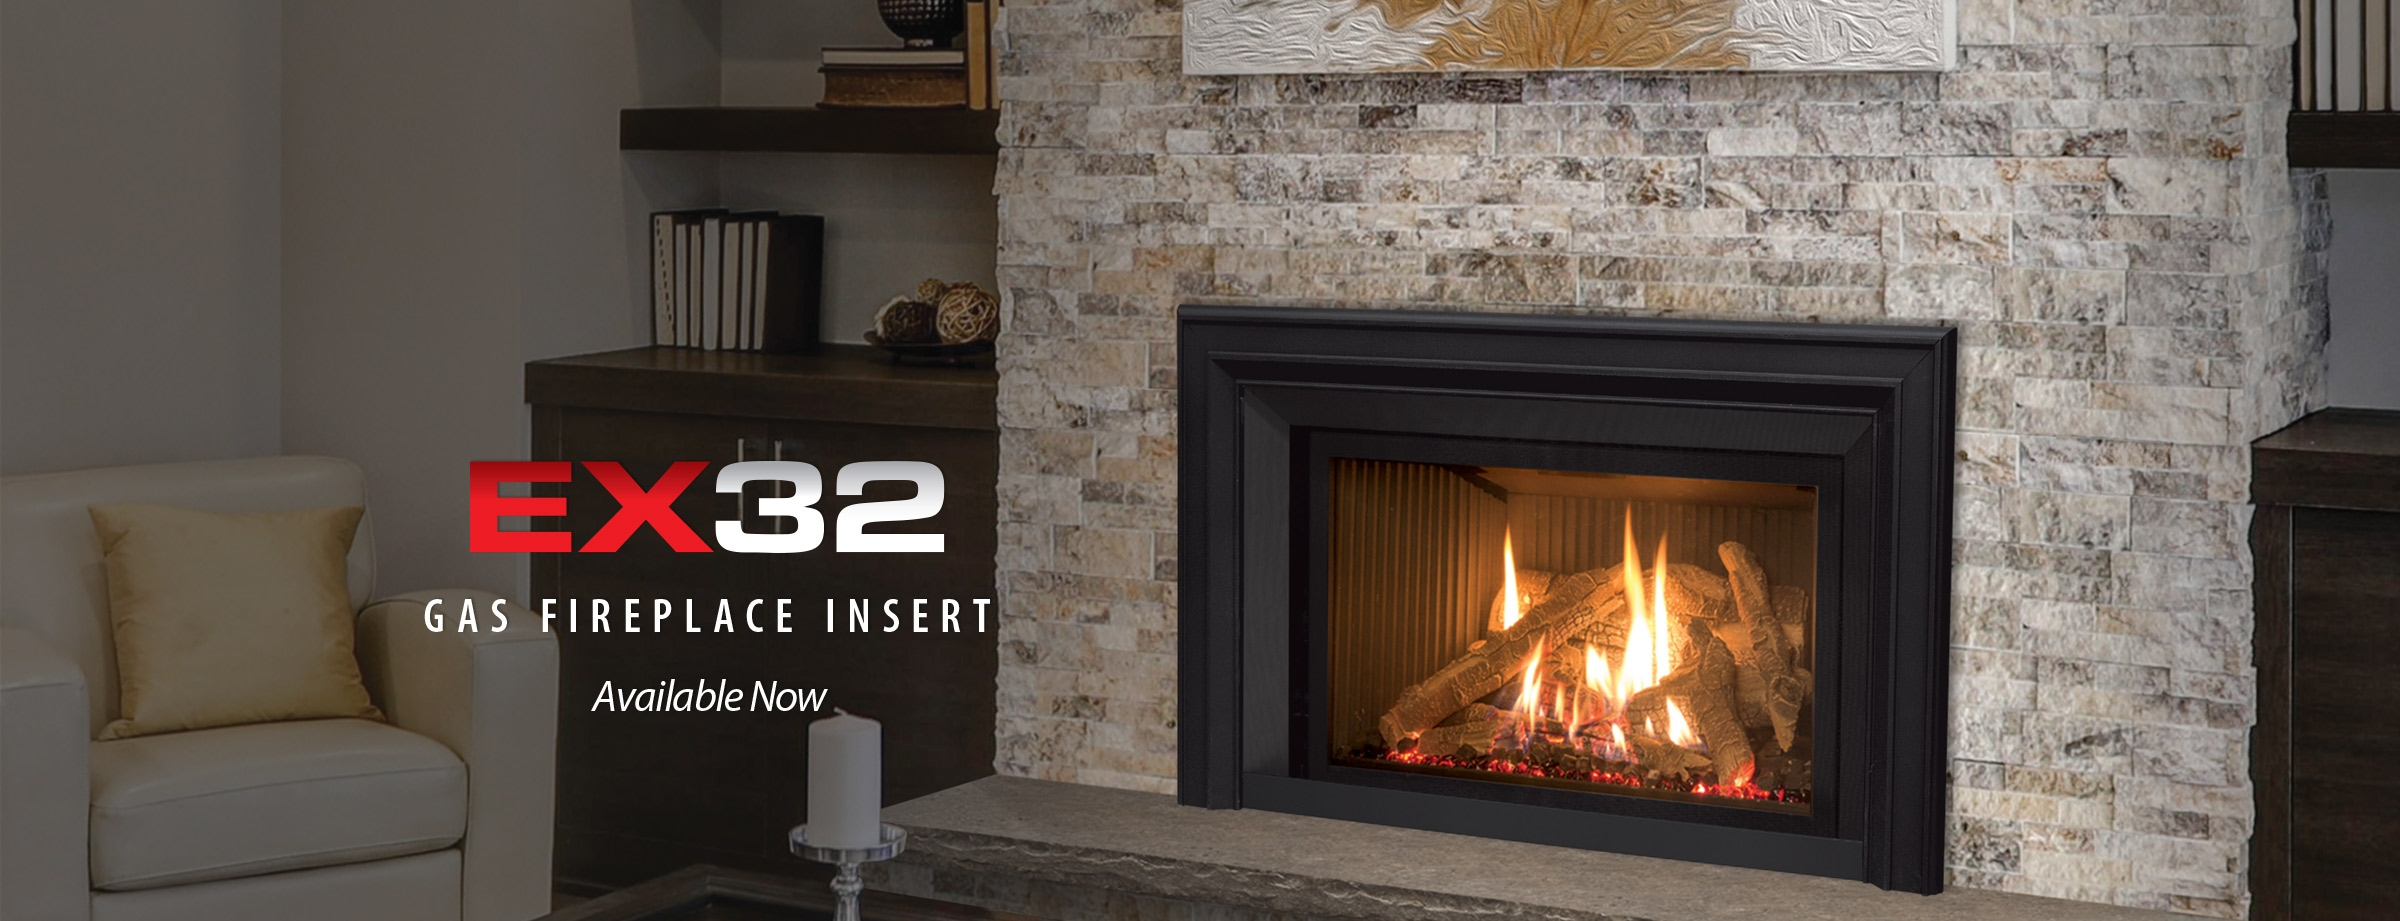 wood trends and best insert install tags image files for lowes cost a stove burning how appealing heaters fireplace convert in gas inserts to popular